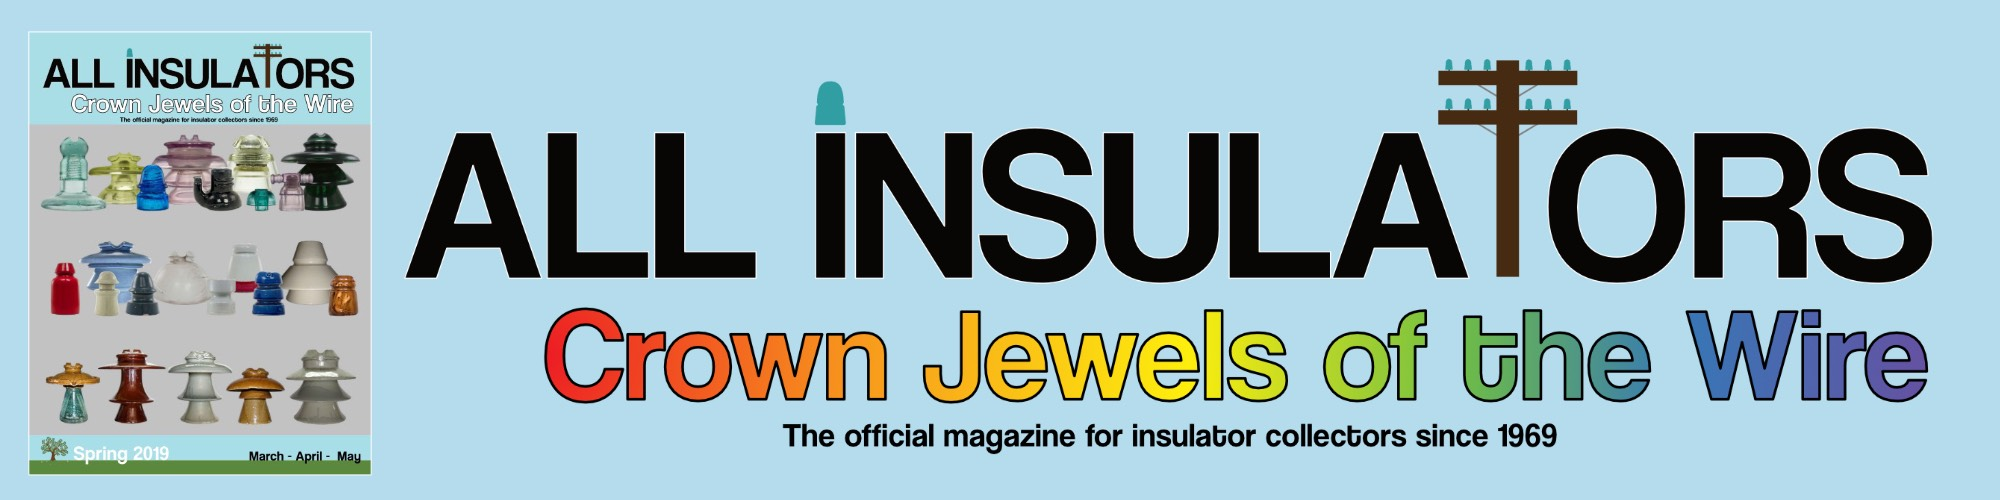 All Insulators, Crown Jewels of the Wire Magazine